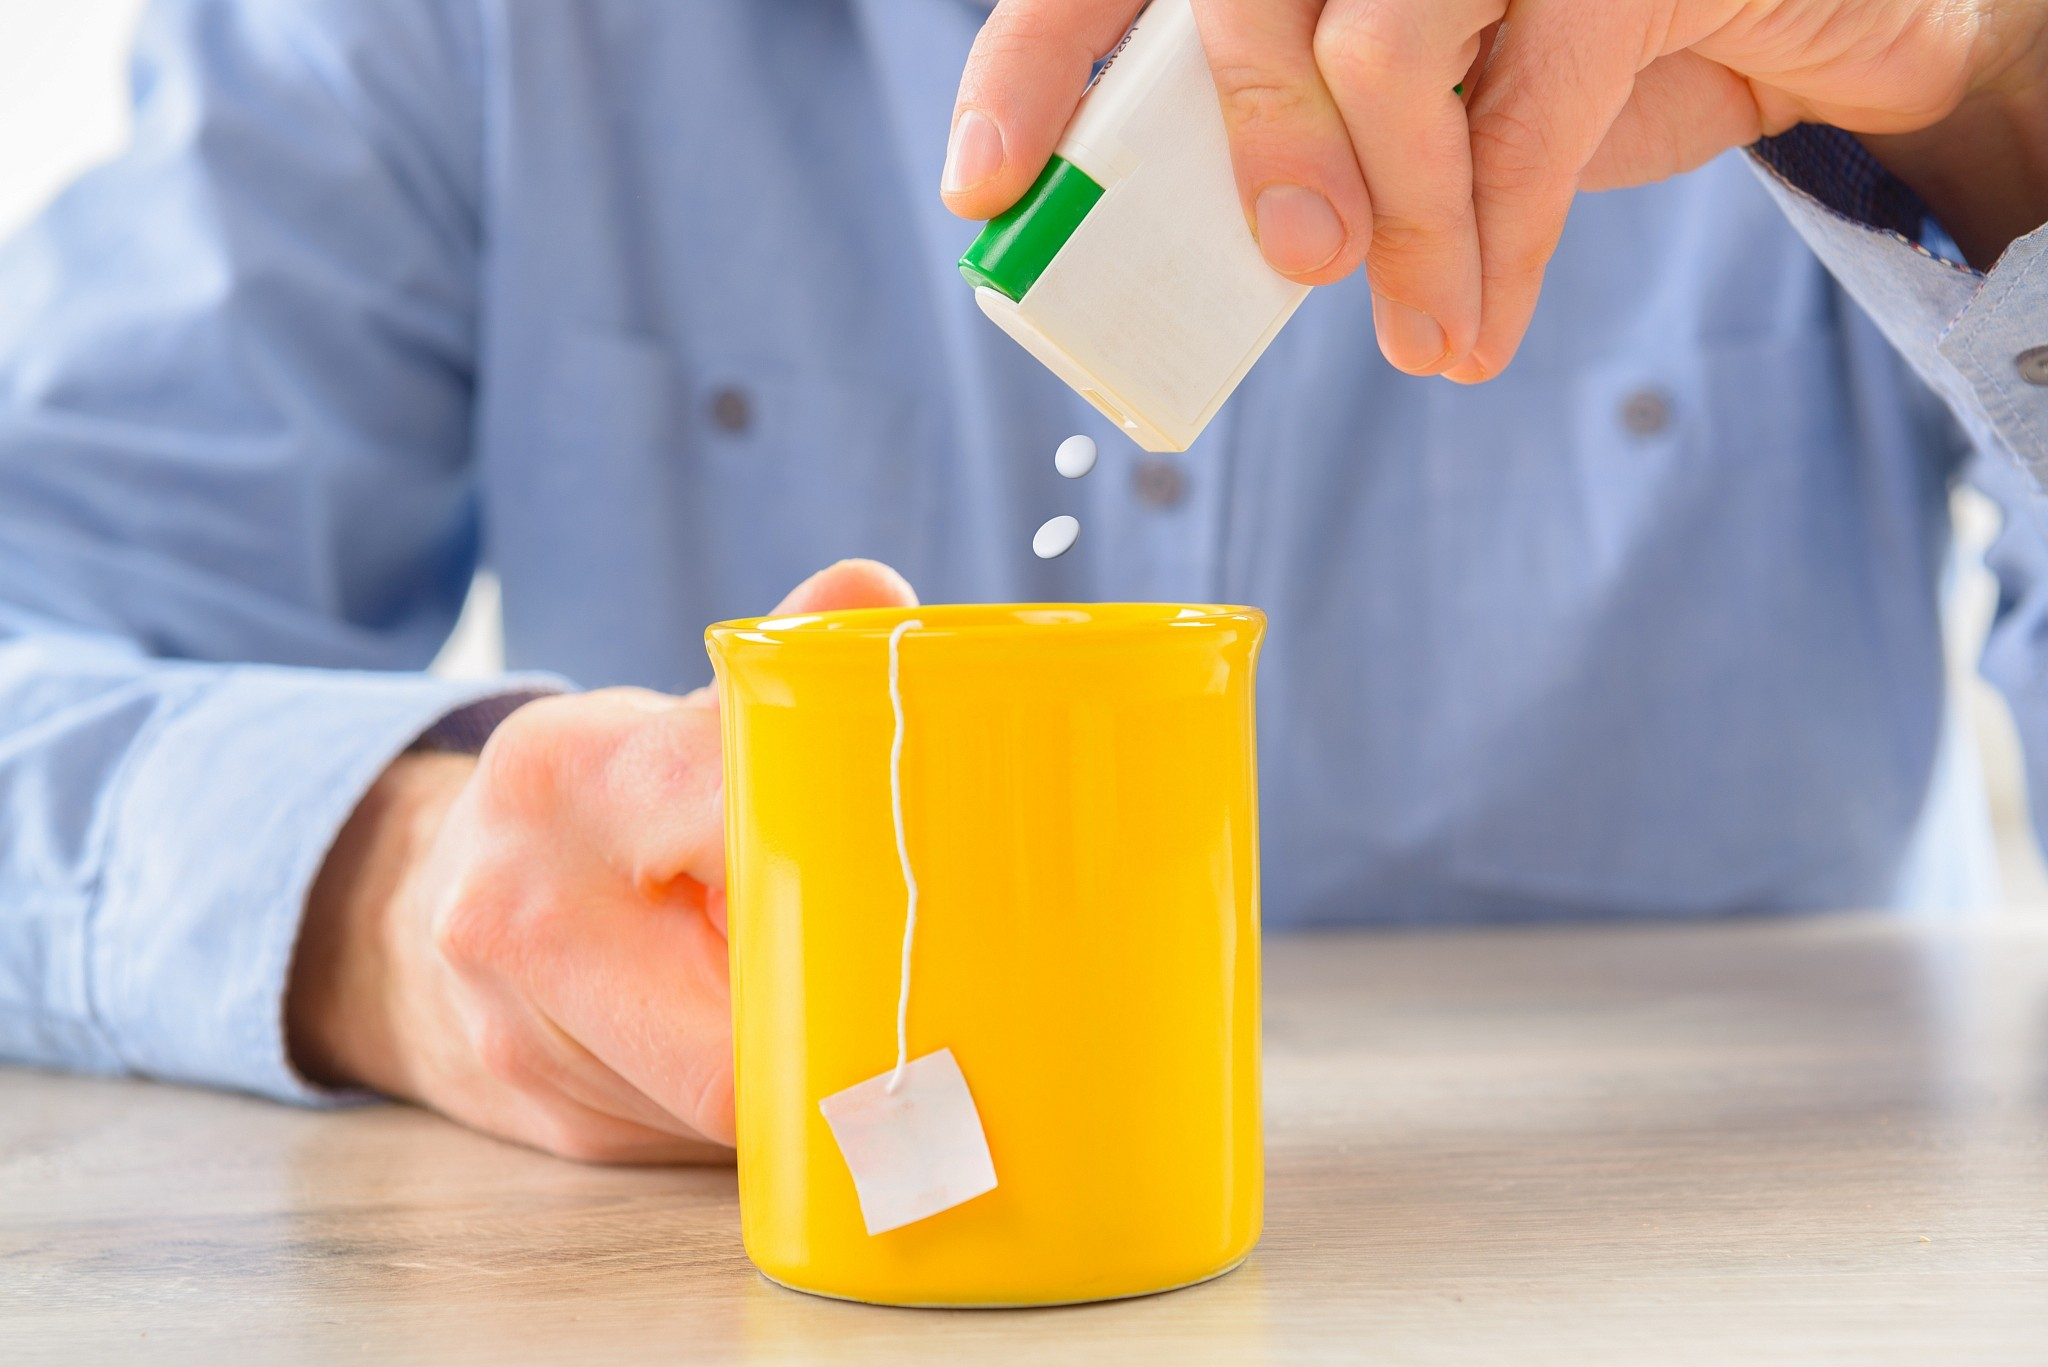 New health warning issued over 'toxic' sweeteners in diet drinks